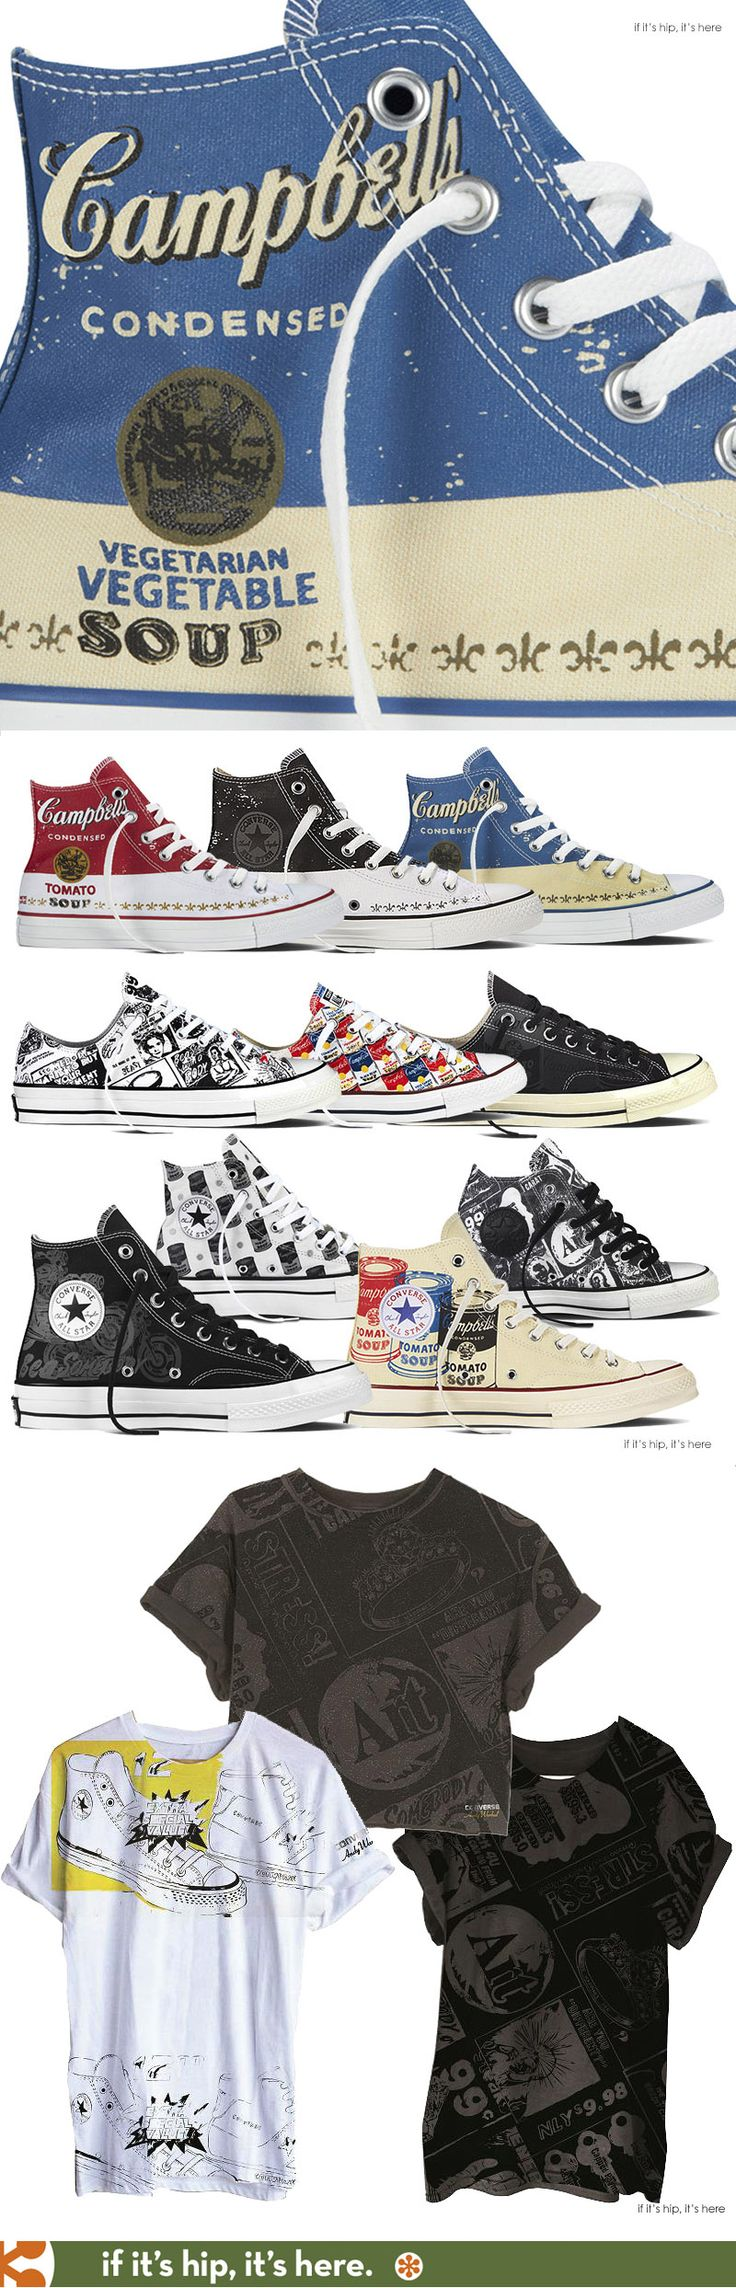 A sneak peek at the soon to be released Converse Andy Warhol Collection of shoes and apparel. Cool kicks and tees for men and women that feature pop artist Warhol's iconic Campbell soup art, his newsprint art and motorcycle prints from the 70s. More pics and prices at the link.